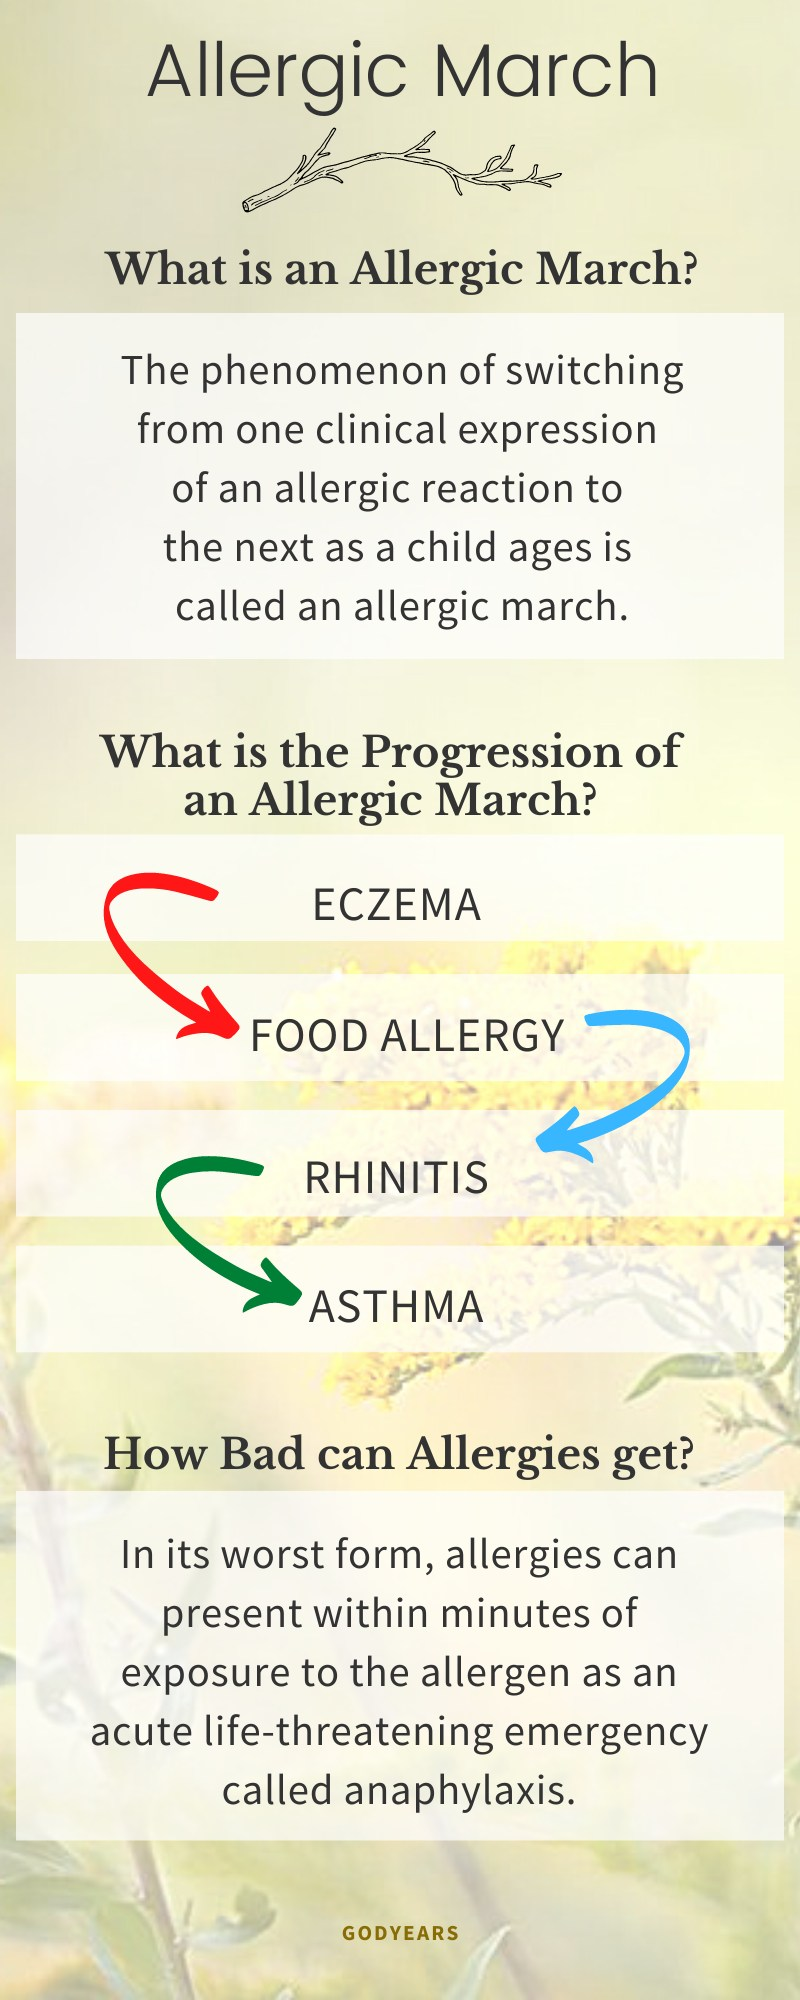 infographic explaining what an allergic march is